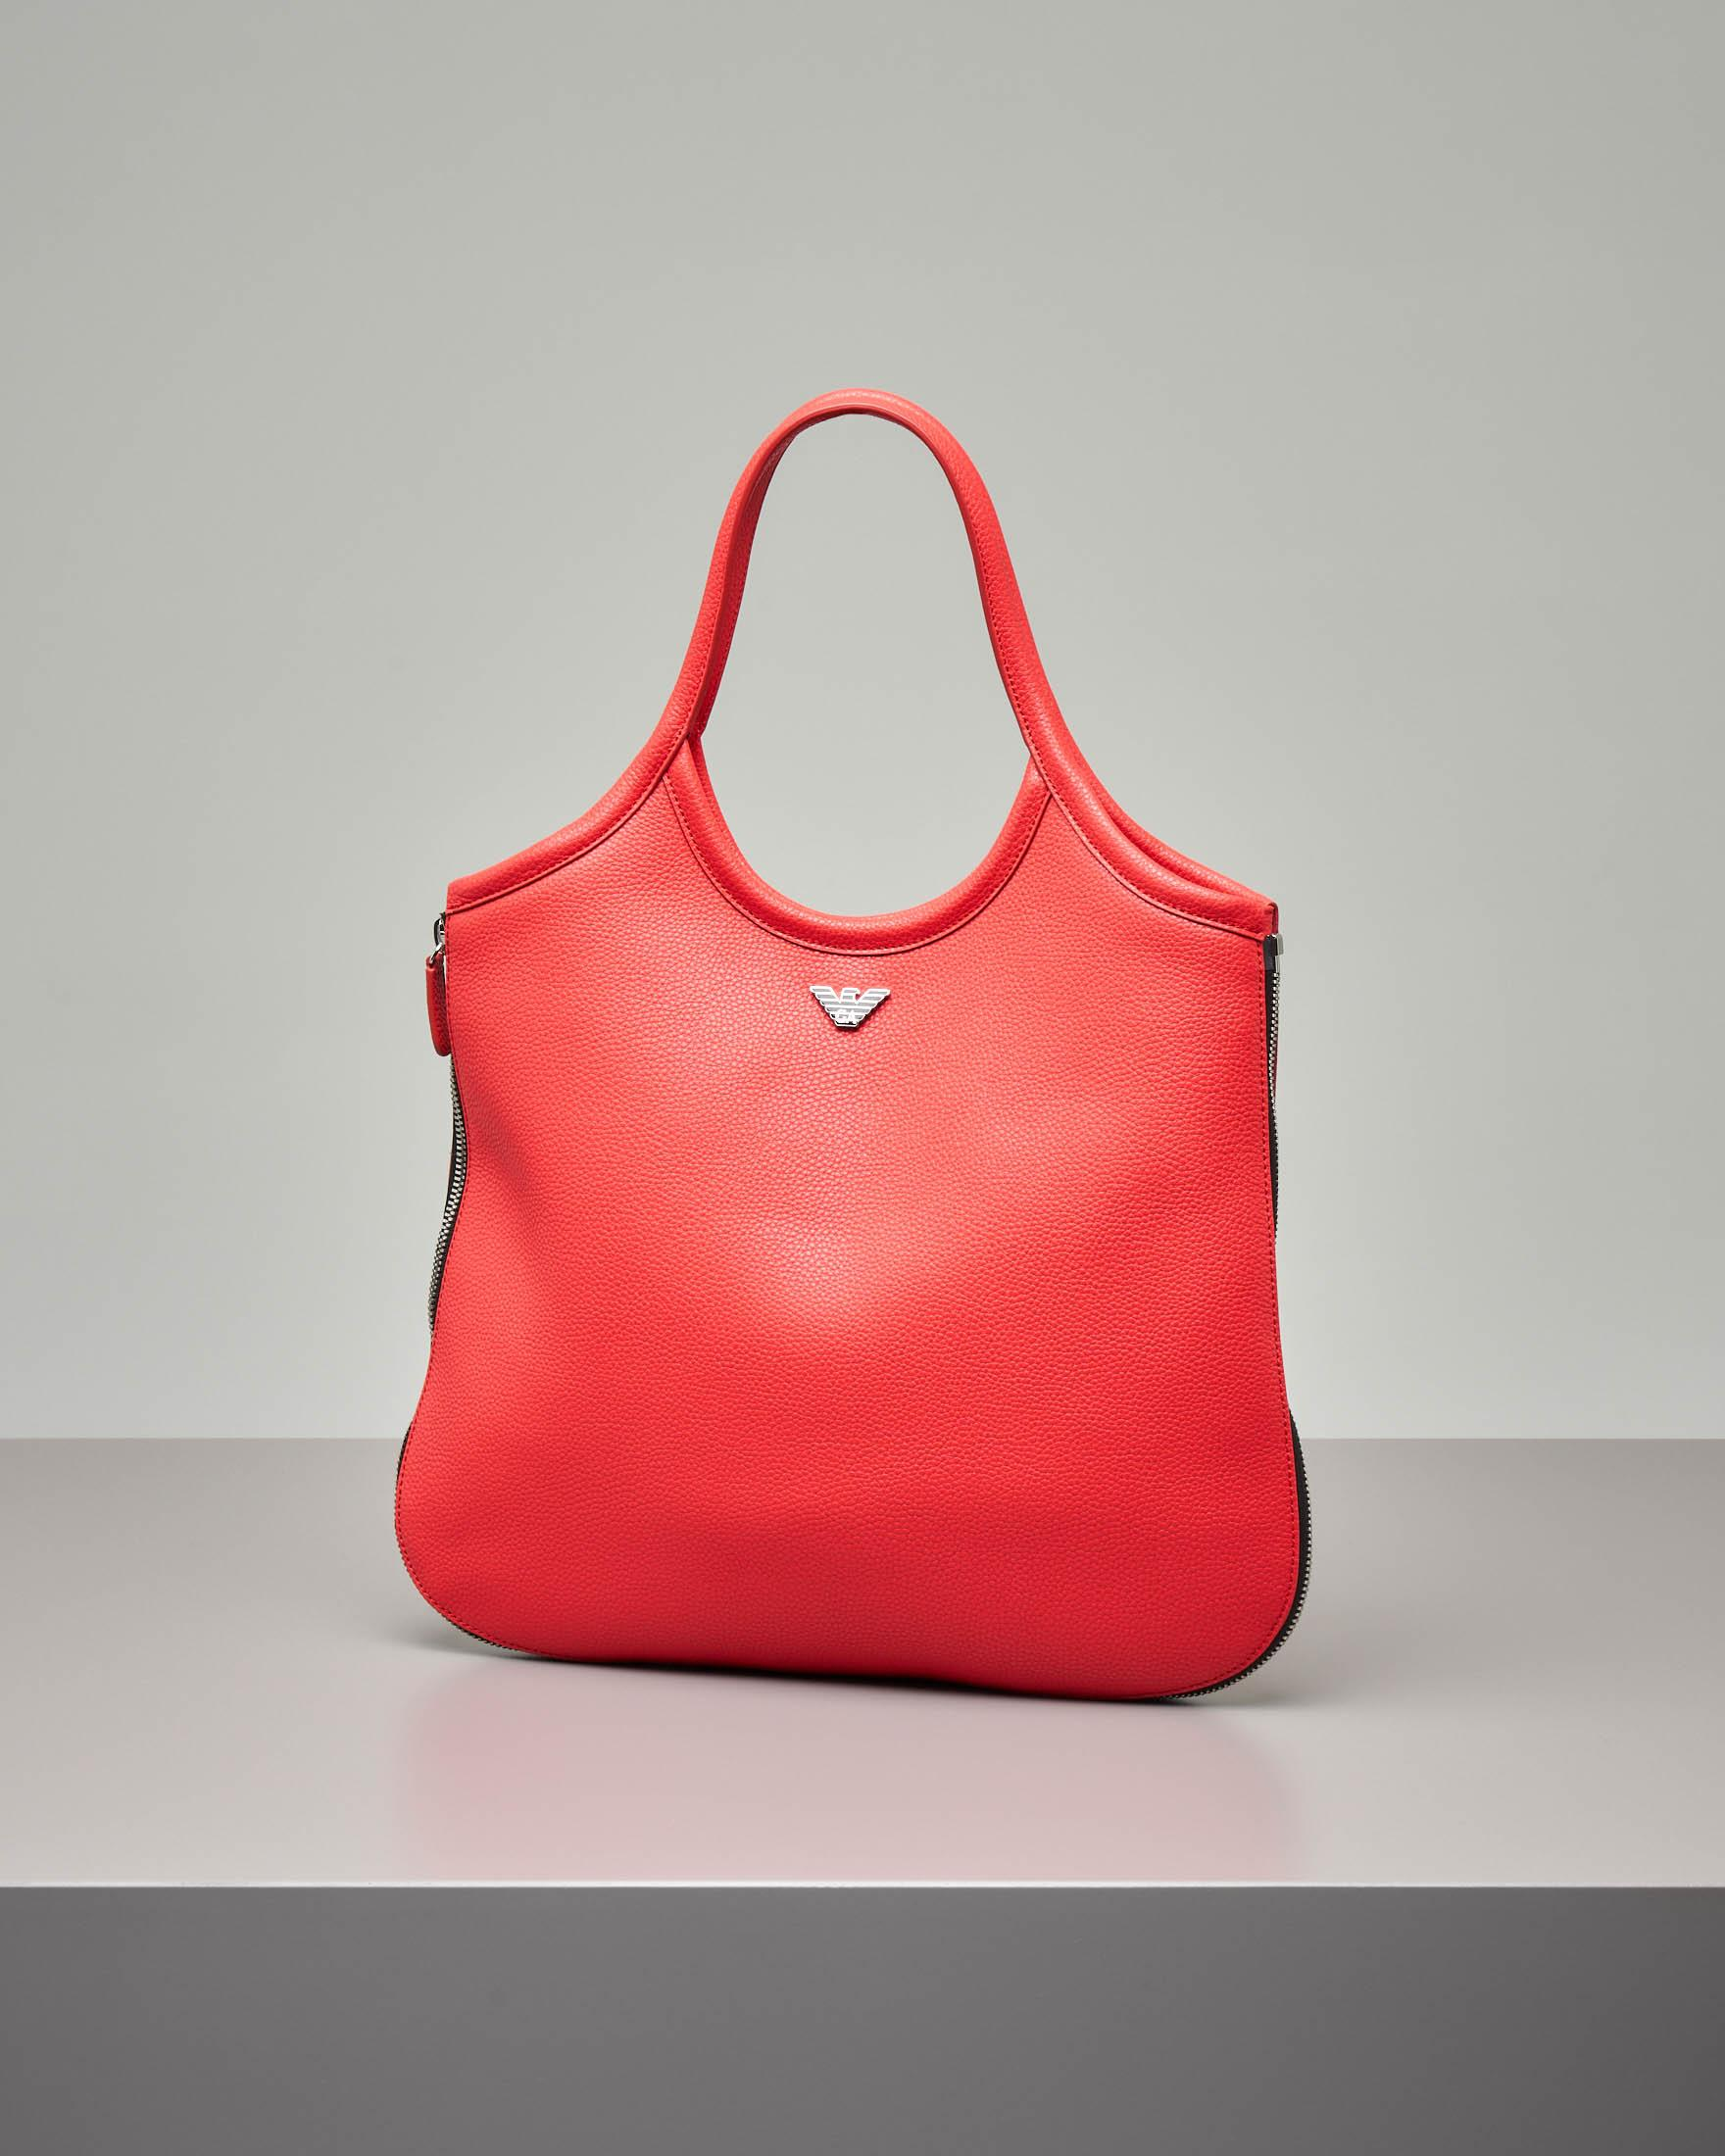 Borsa hobo in pelle rossa